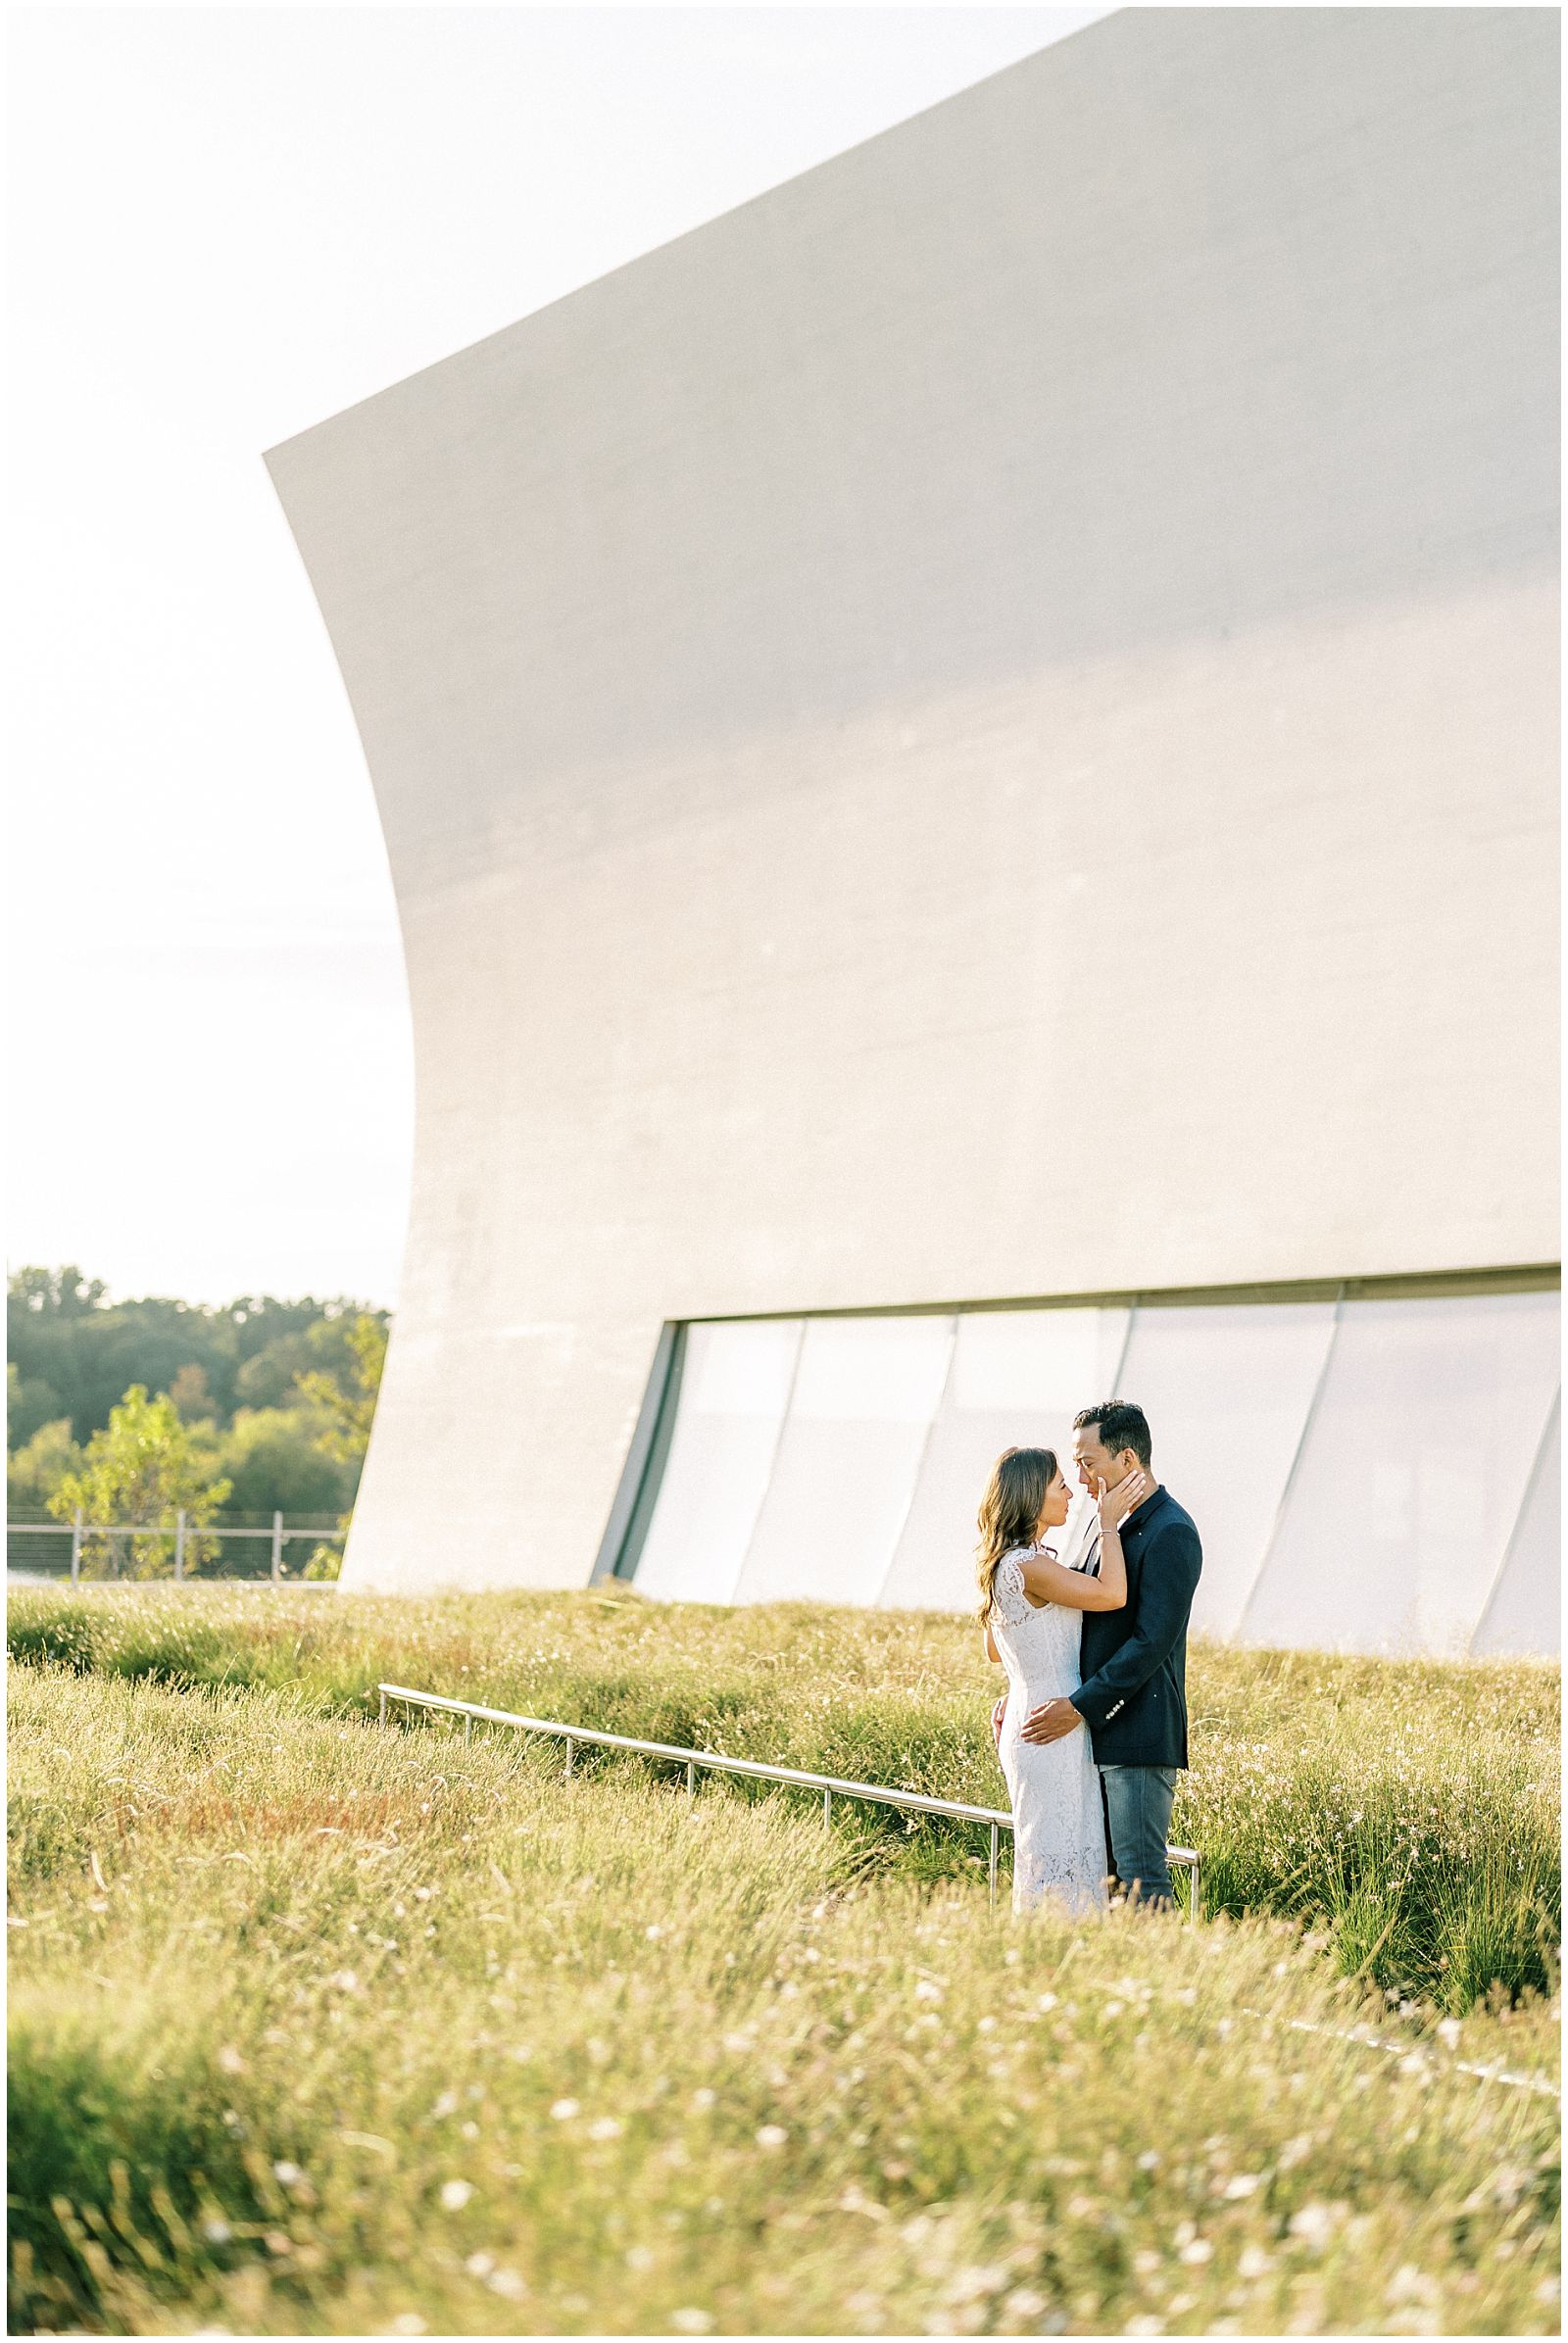 The REACH at the Kennedy Center engagement photography